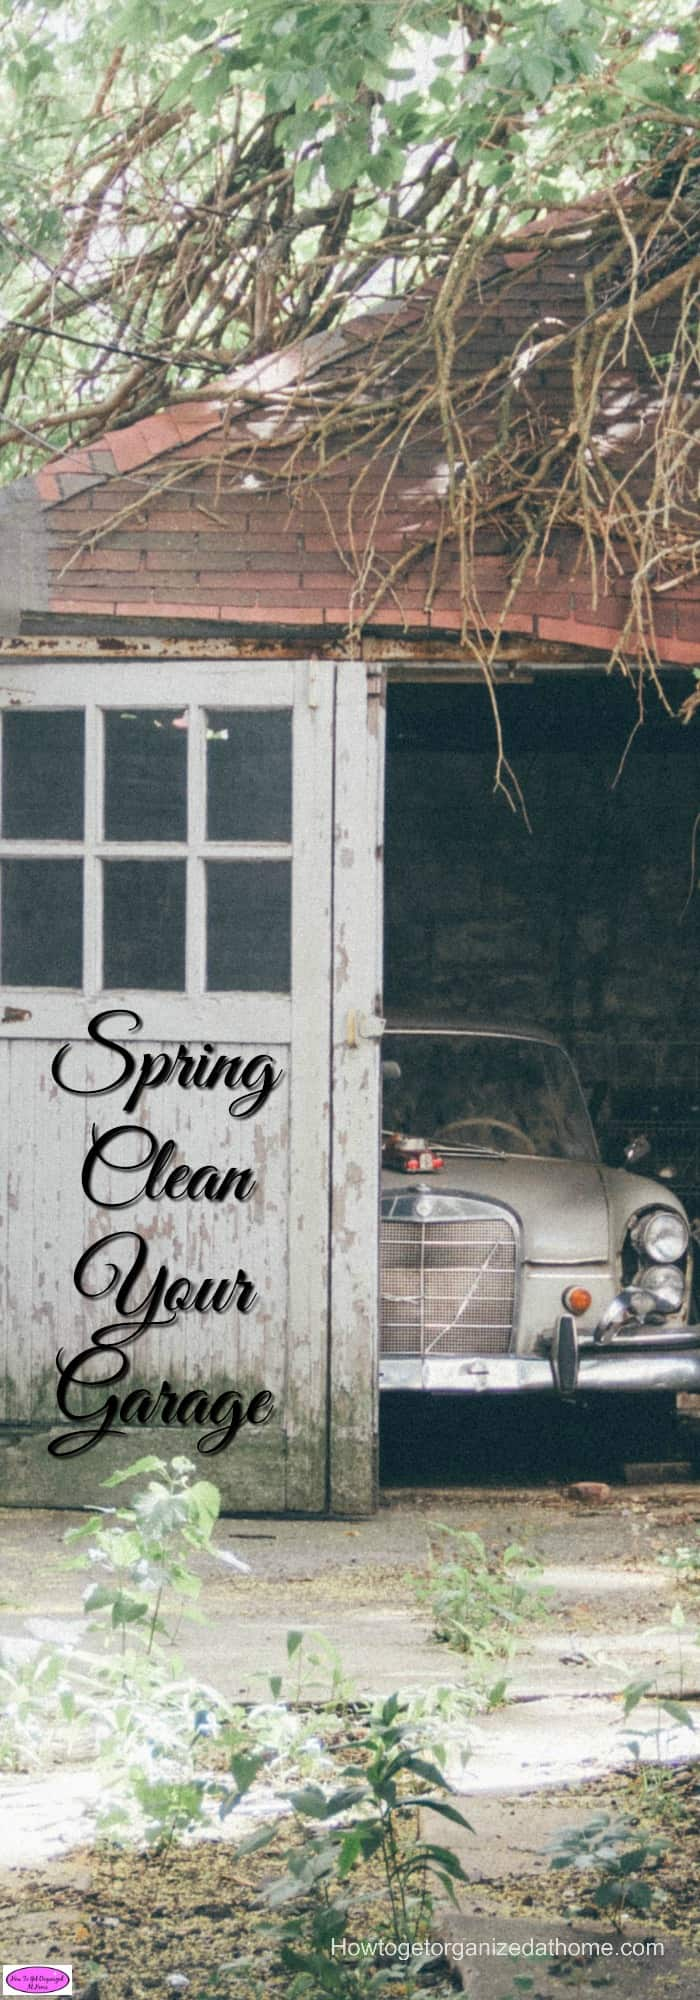 Spring clean your garage is a great way to check for any winter damage and to schedule in time for repair and maintenance issues.